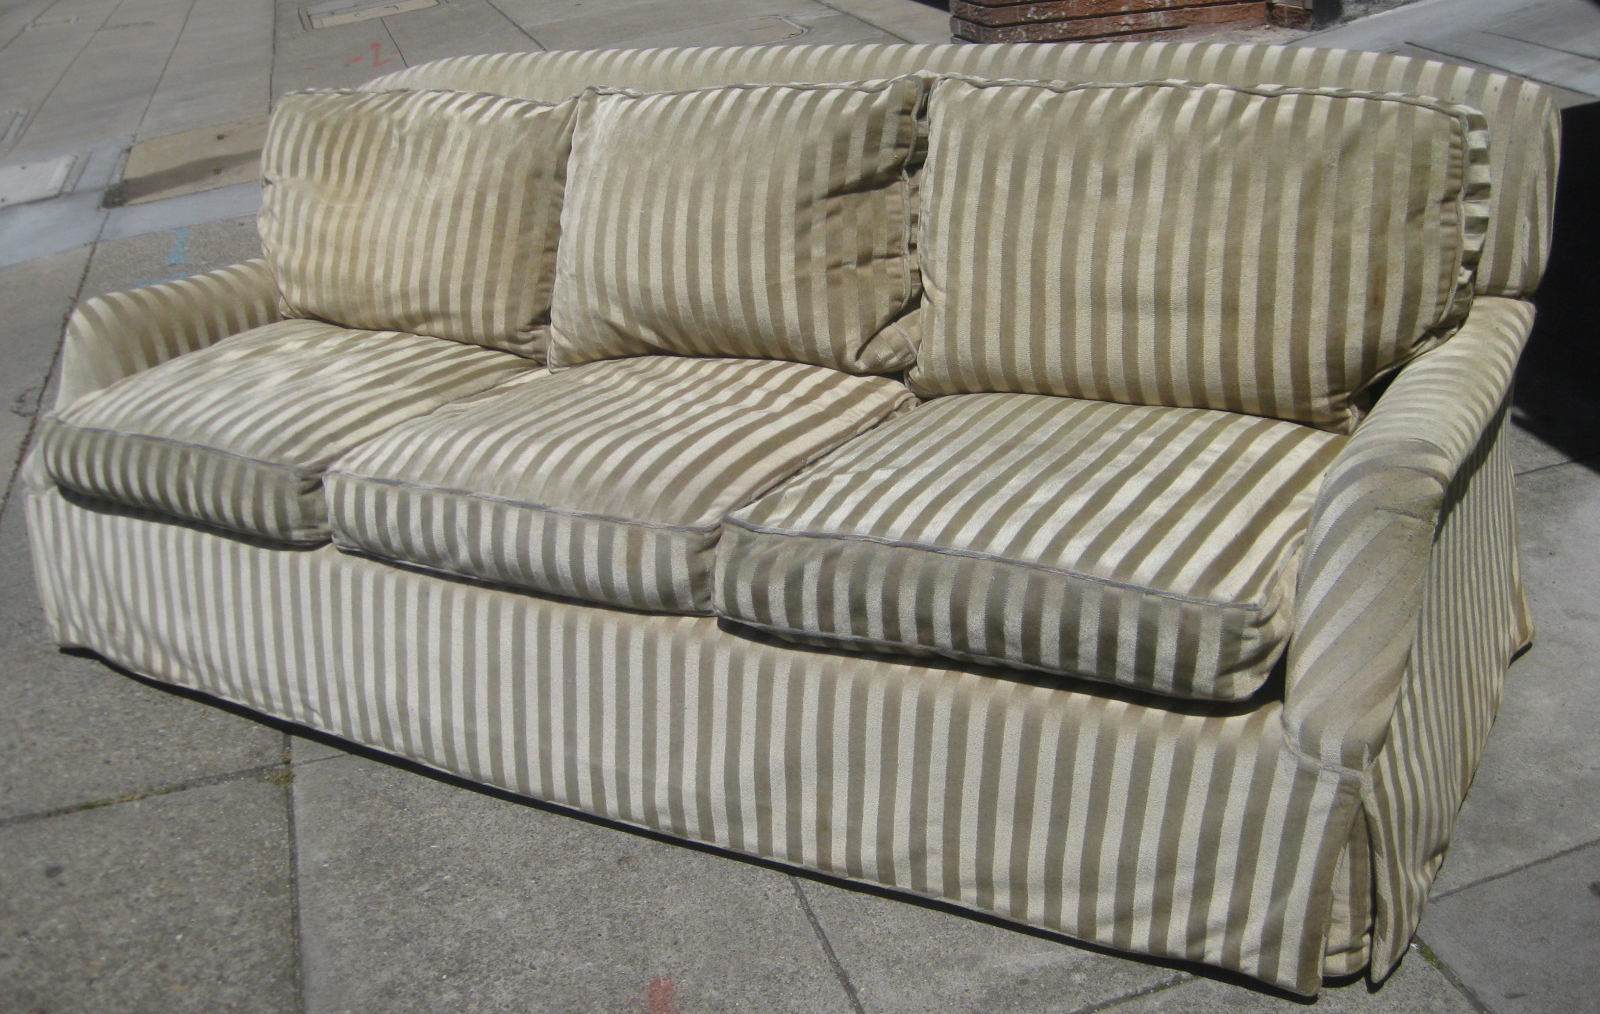 Uhuru Furniture & Collectibles: Sold – Down Filled Sofa – $120 Intended For Down Filled Sofas (View 11 of 15)